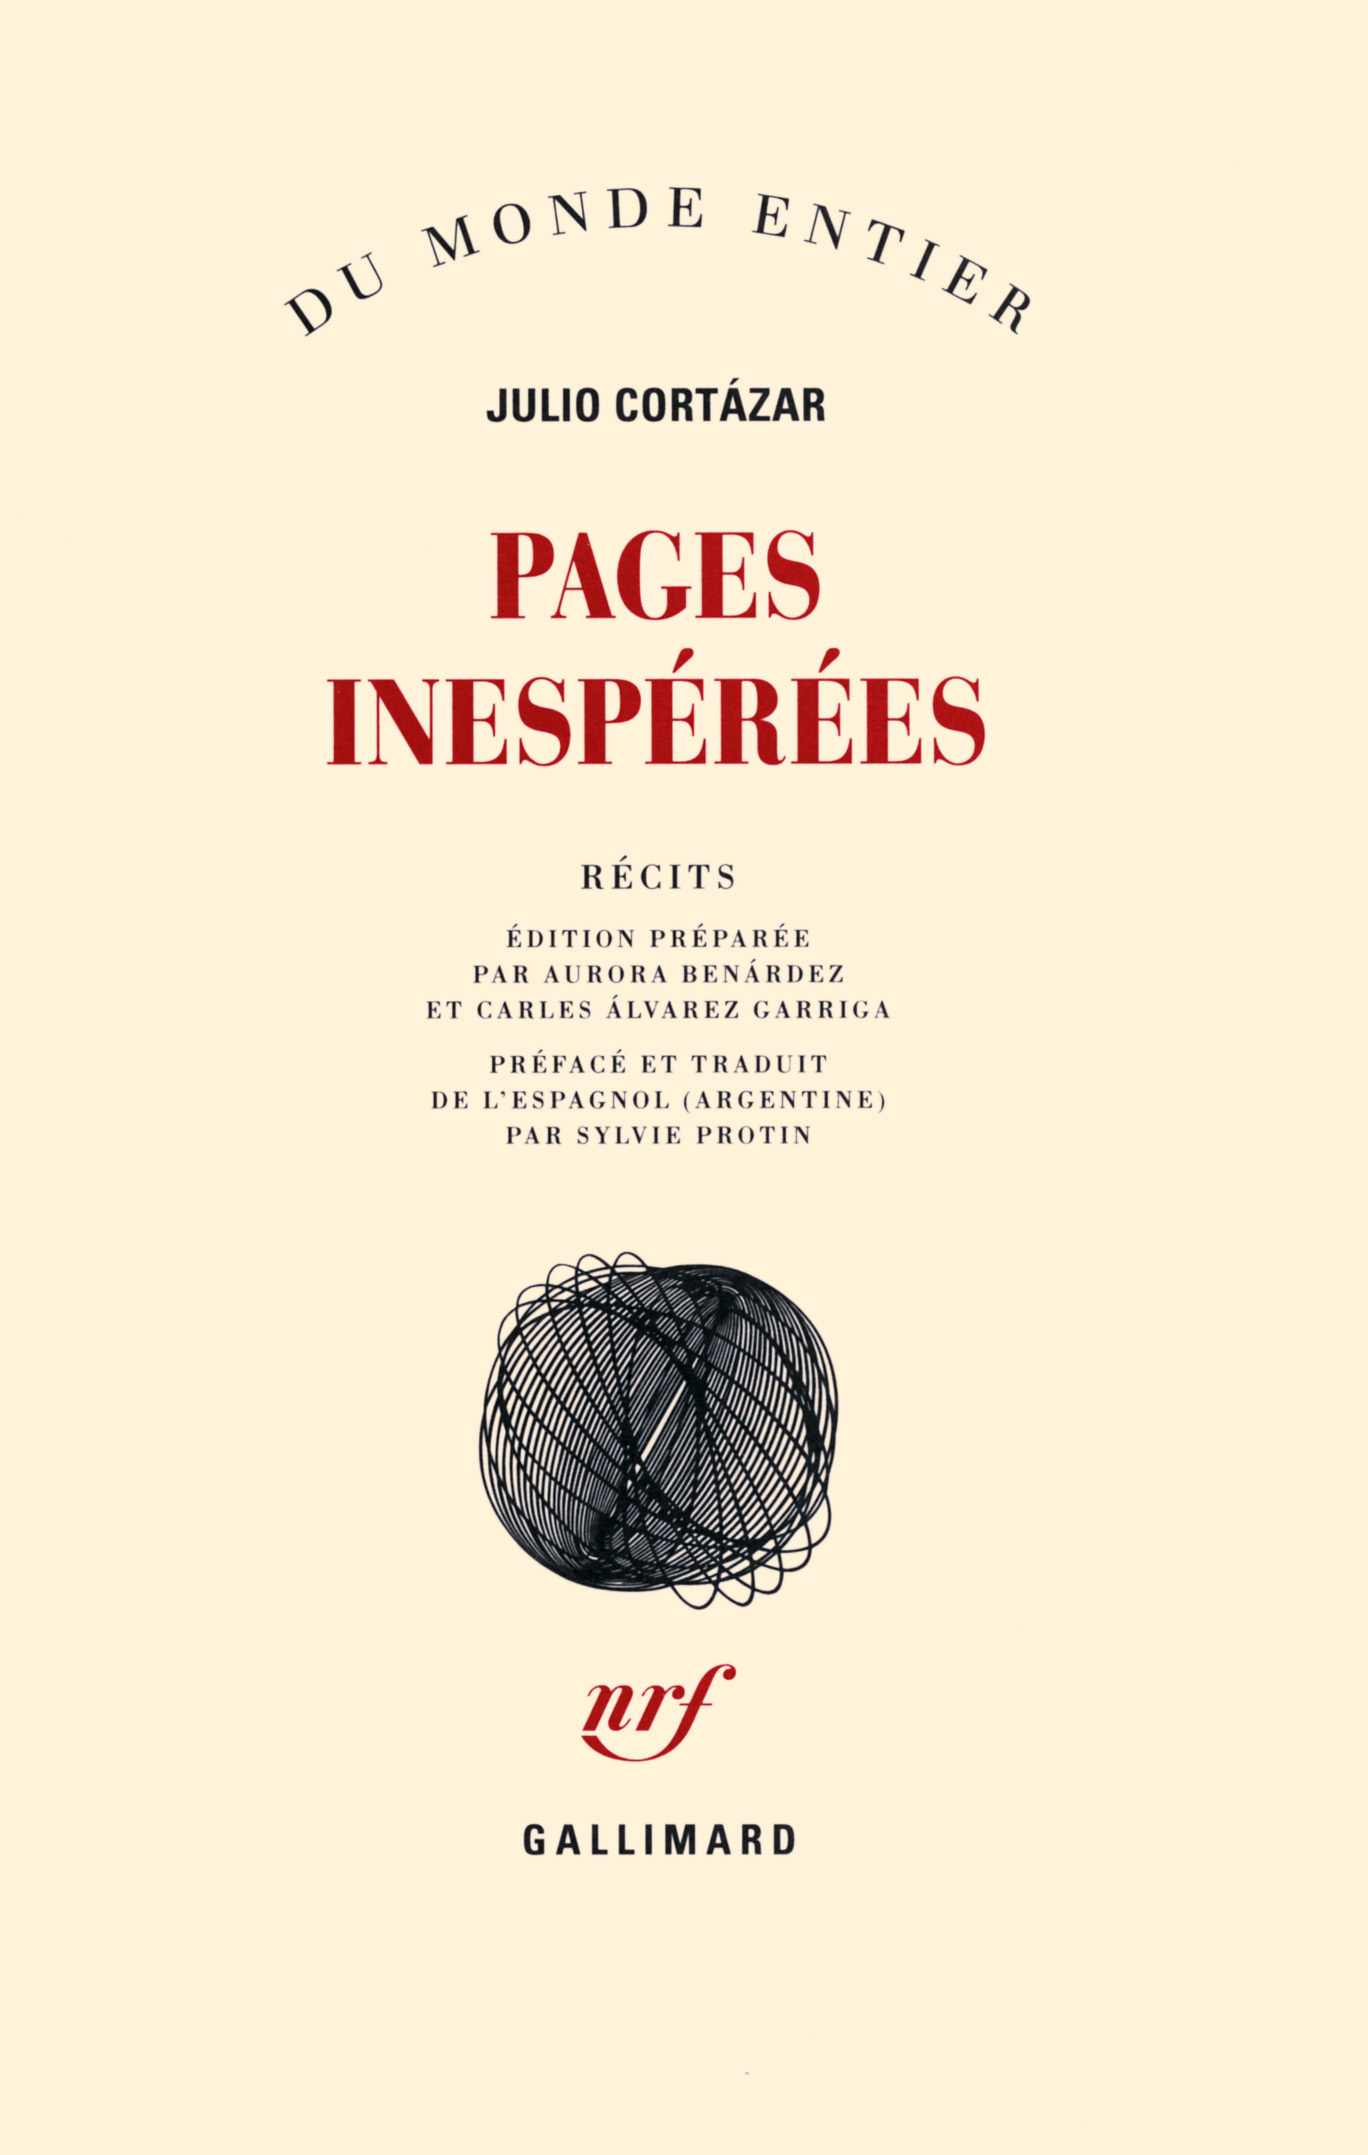 PAGES INESPEREES RECITS